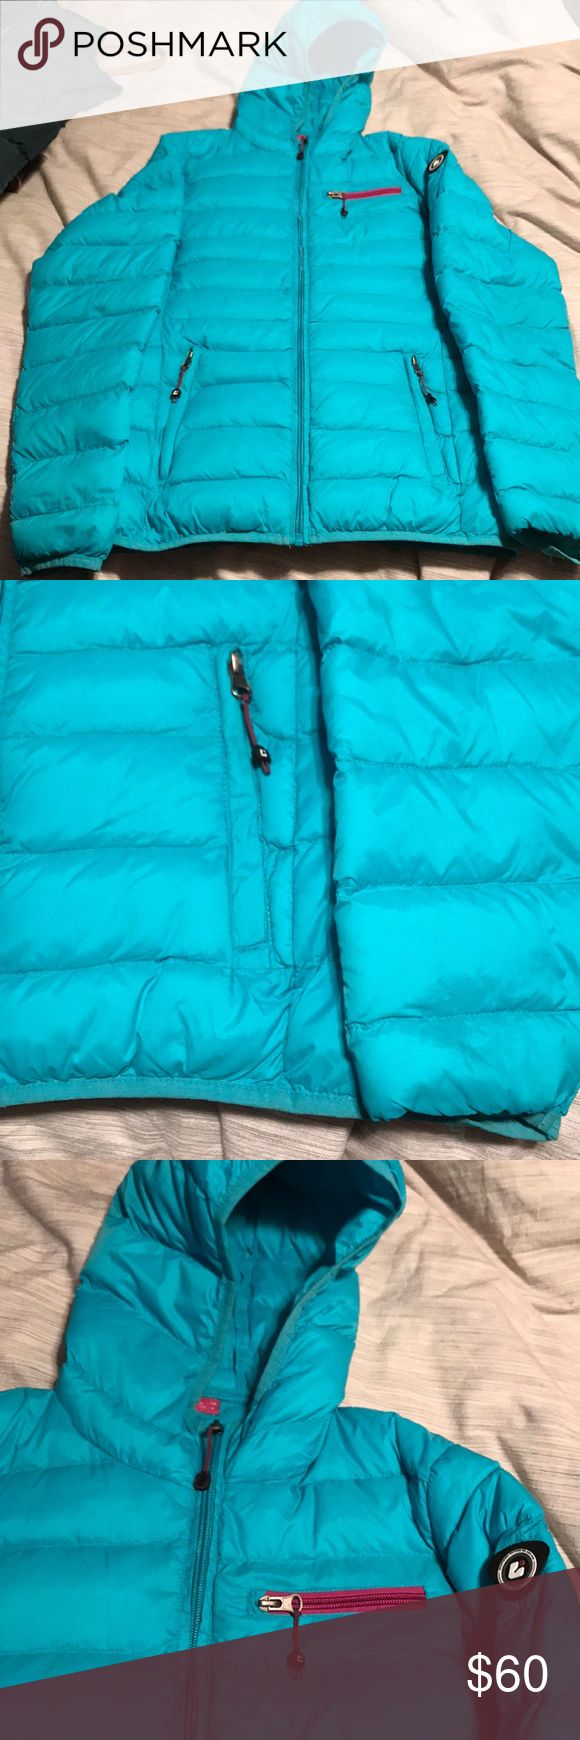 Killtec Puffer Jacket EUC warm Puffer Jacket with hood. Adorable blue color with purple accents on zippers. Smoke free home 😊  *NOT Patagonia but the brand has very similar features in their products * killtec was not an option for brand in posh Patagonia Jackets & Coats Puffers